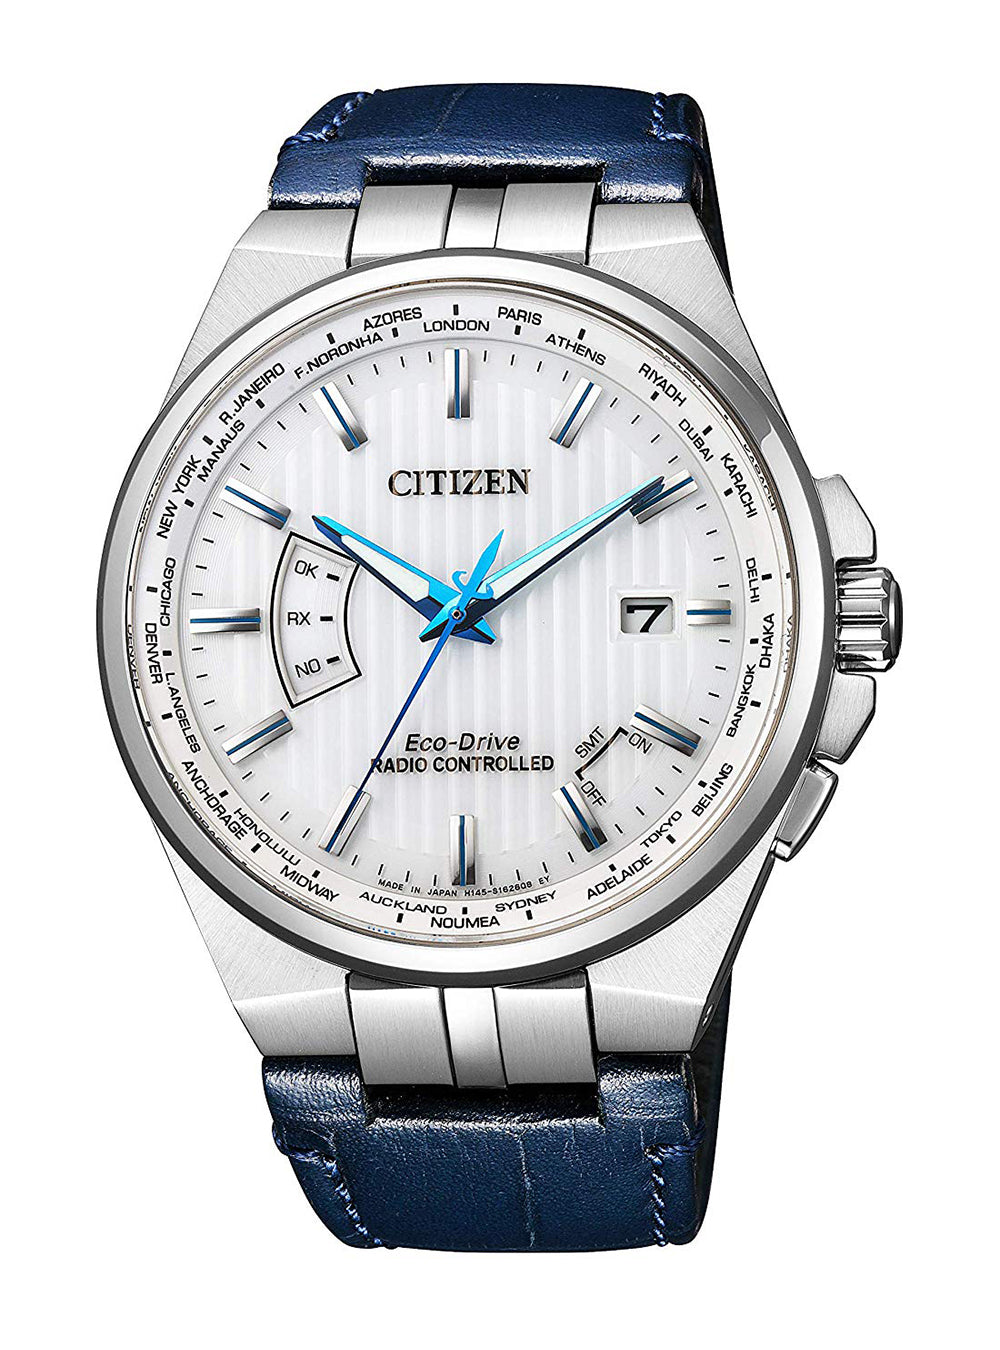 CITIZEN COLLECTION Eco-Drive CB0160-18A JDM (Japanese Domestic Market)